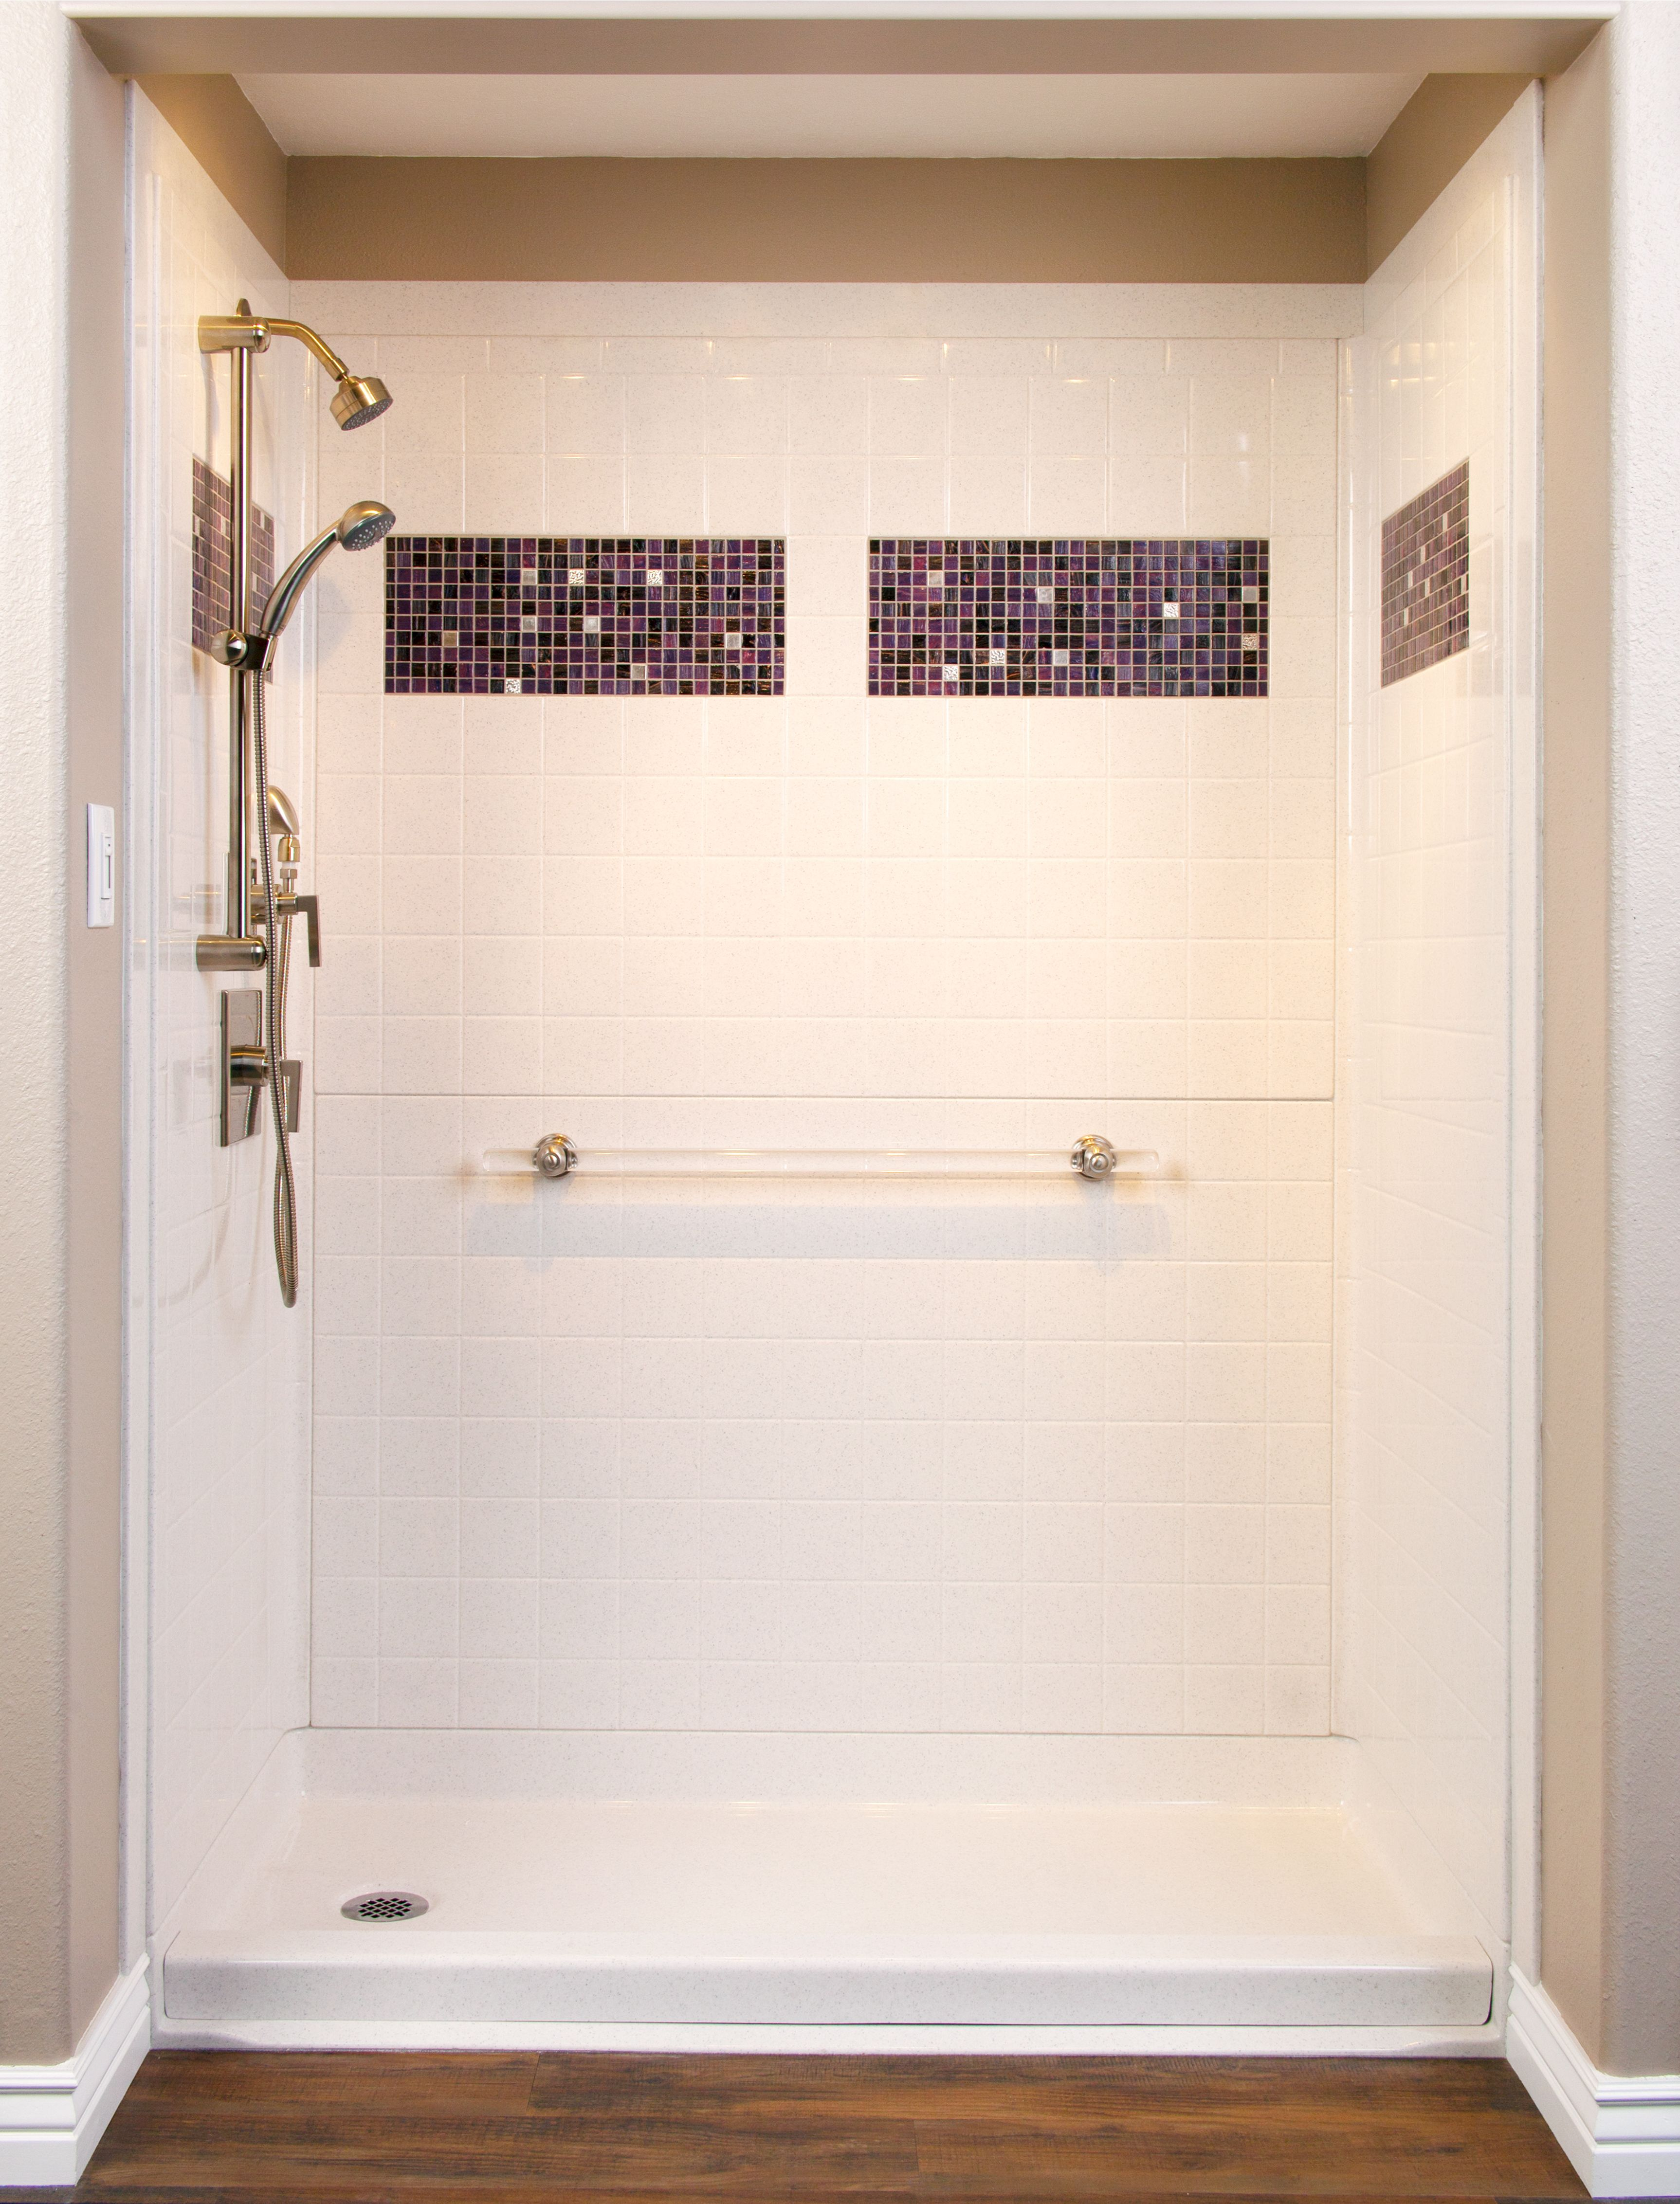 Best Bath Designer Series Shower Unit With Tile Inlay Options To ...